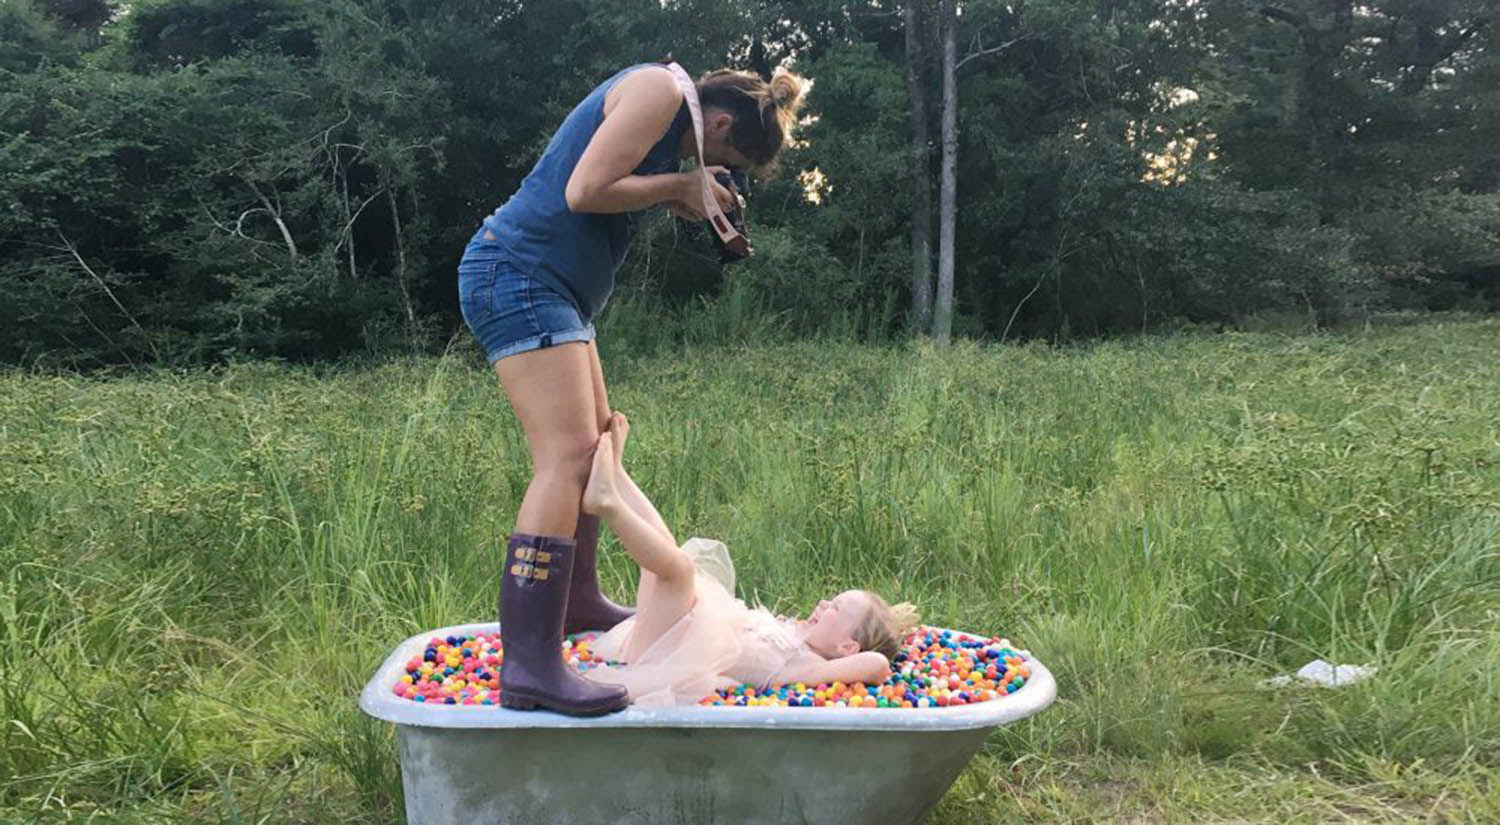 Photographer Shalonda Chaddock stands over a clawfoot tub during an outdoor photo shoot with a young child